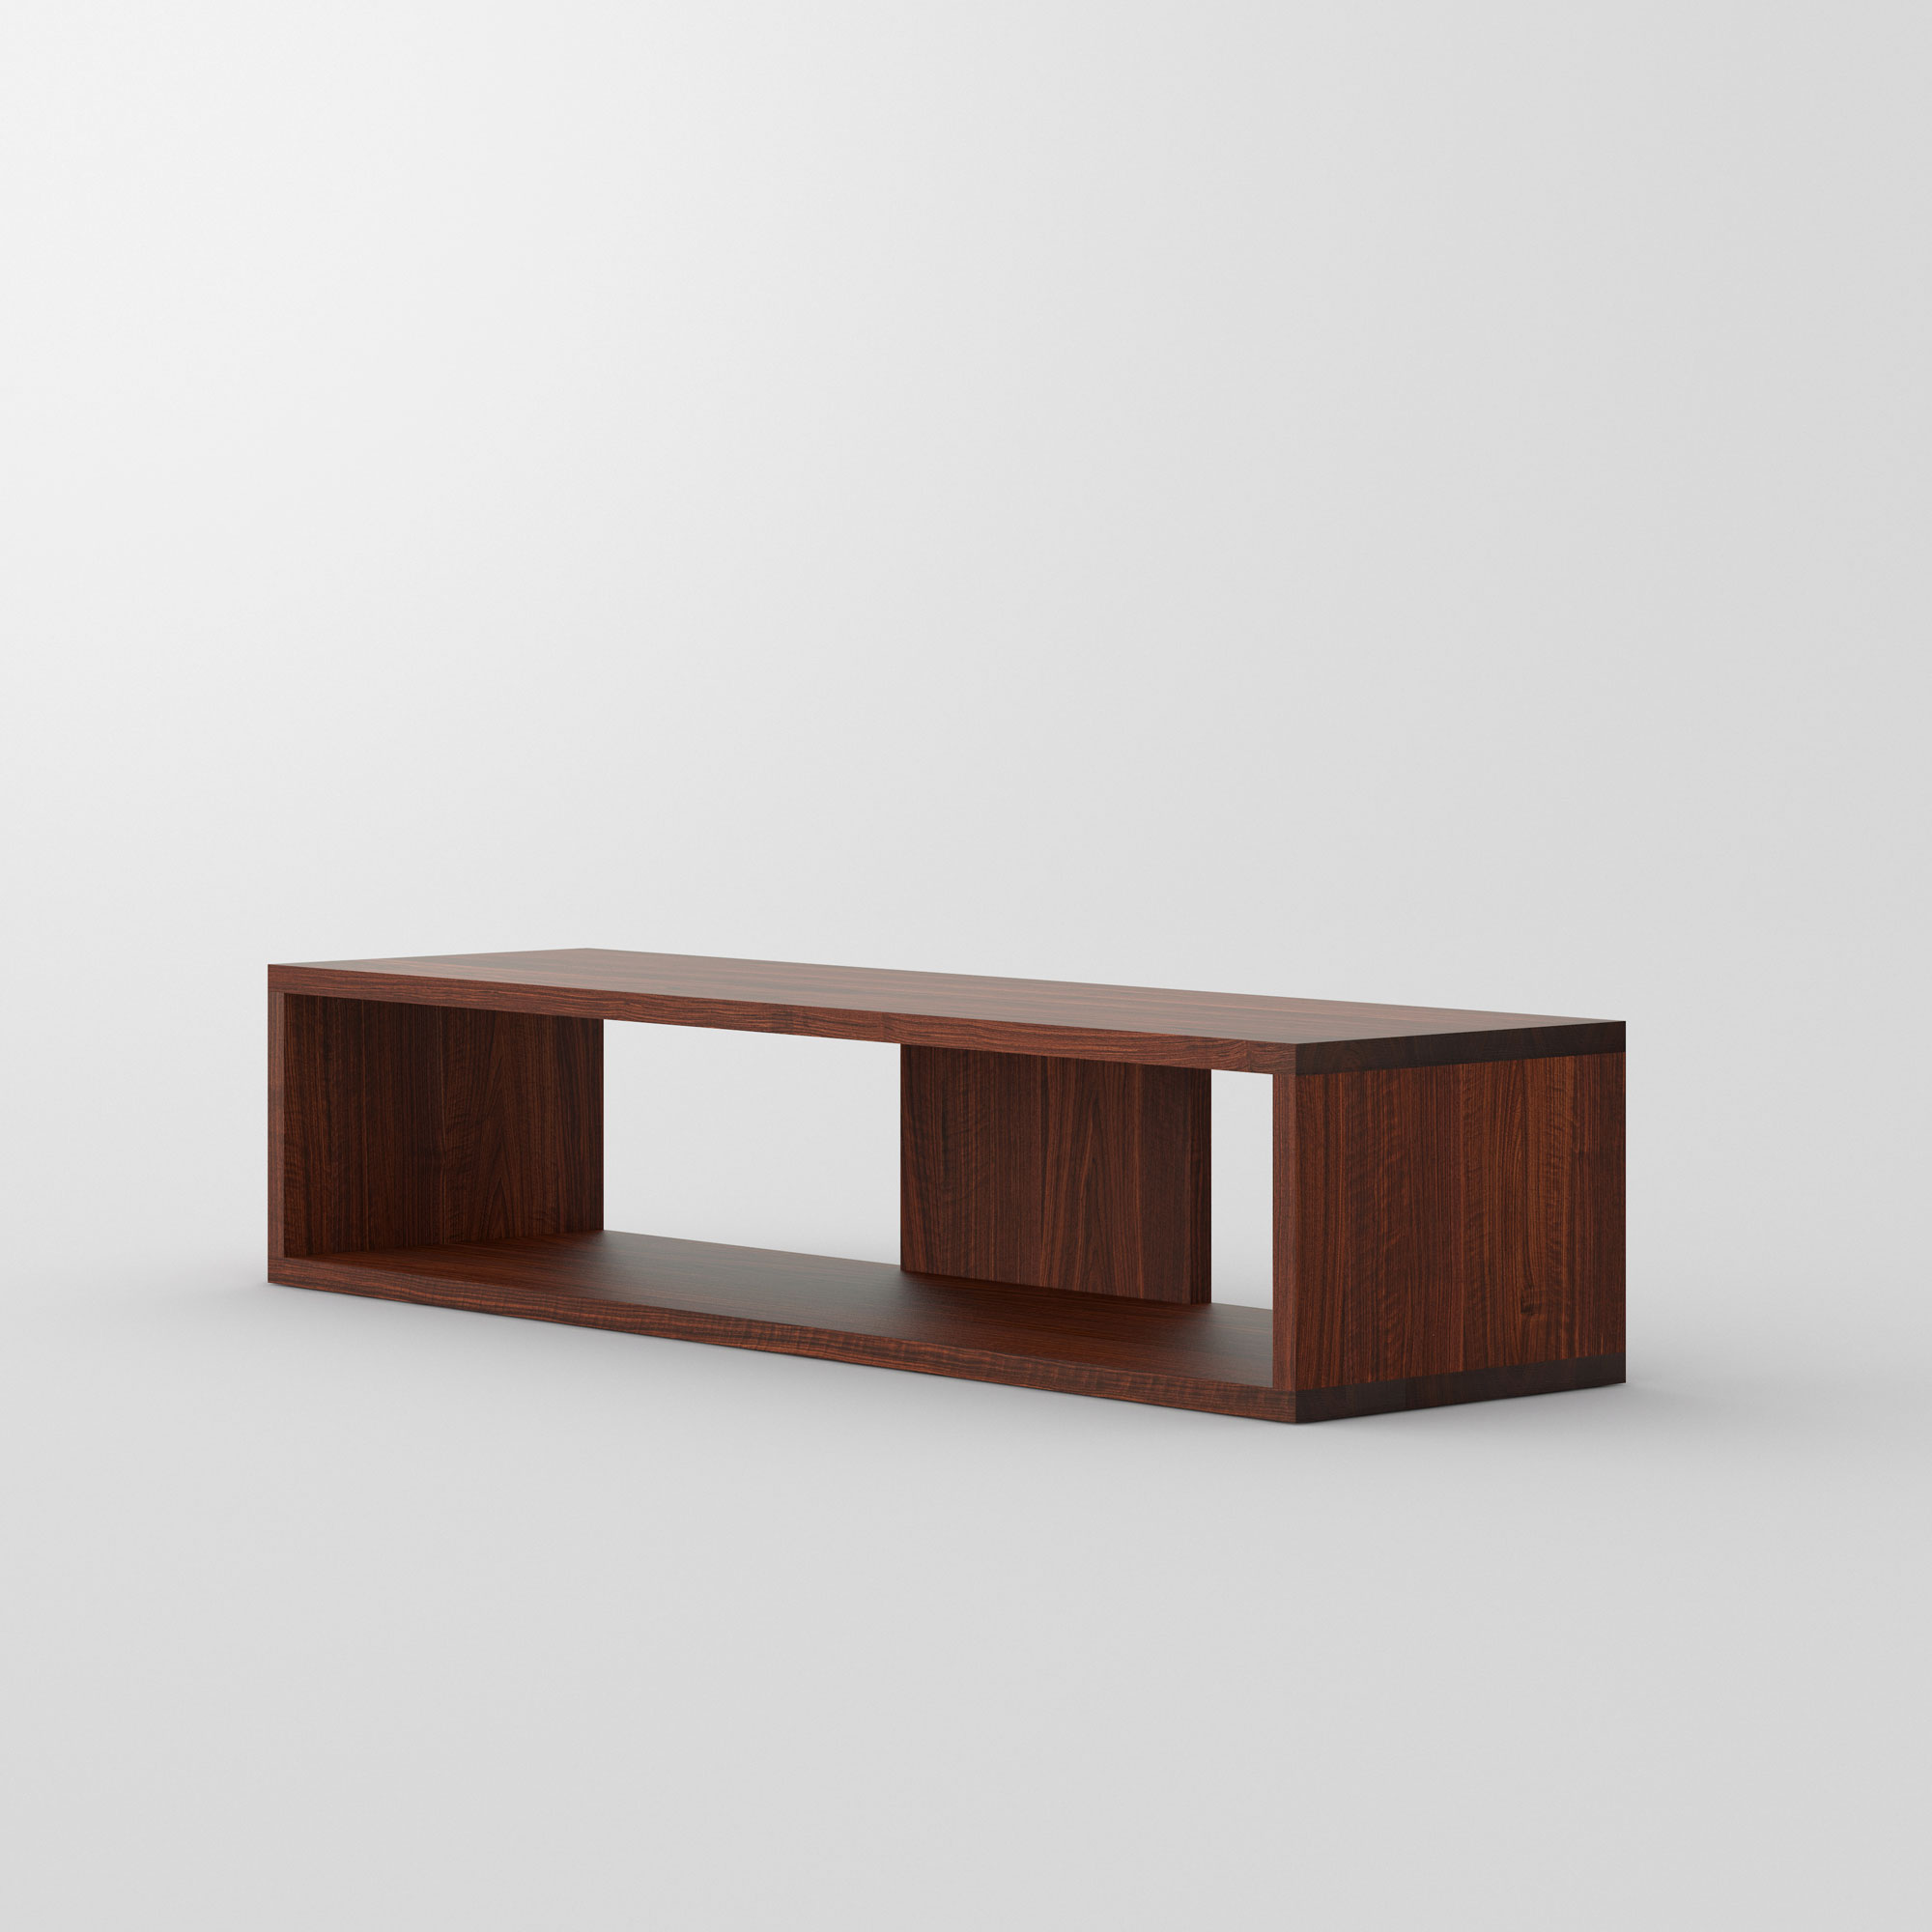 TV Shelf MENA TV cam2 custom made in solid wood by vitamin design